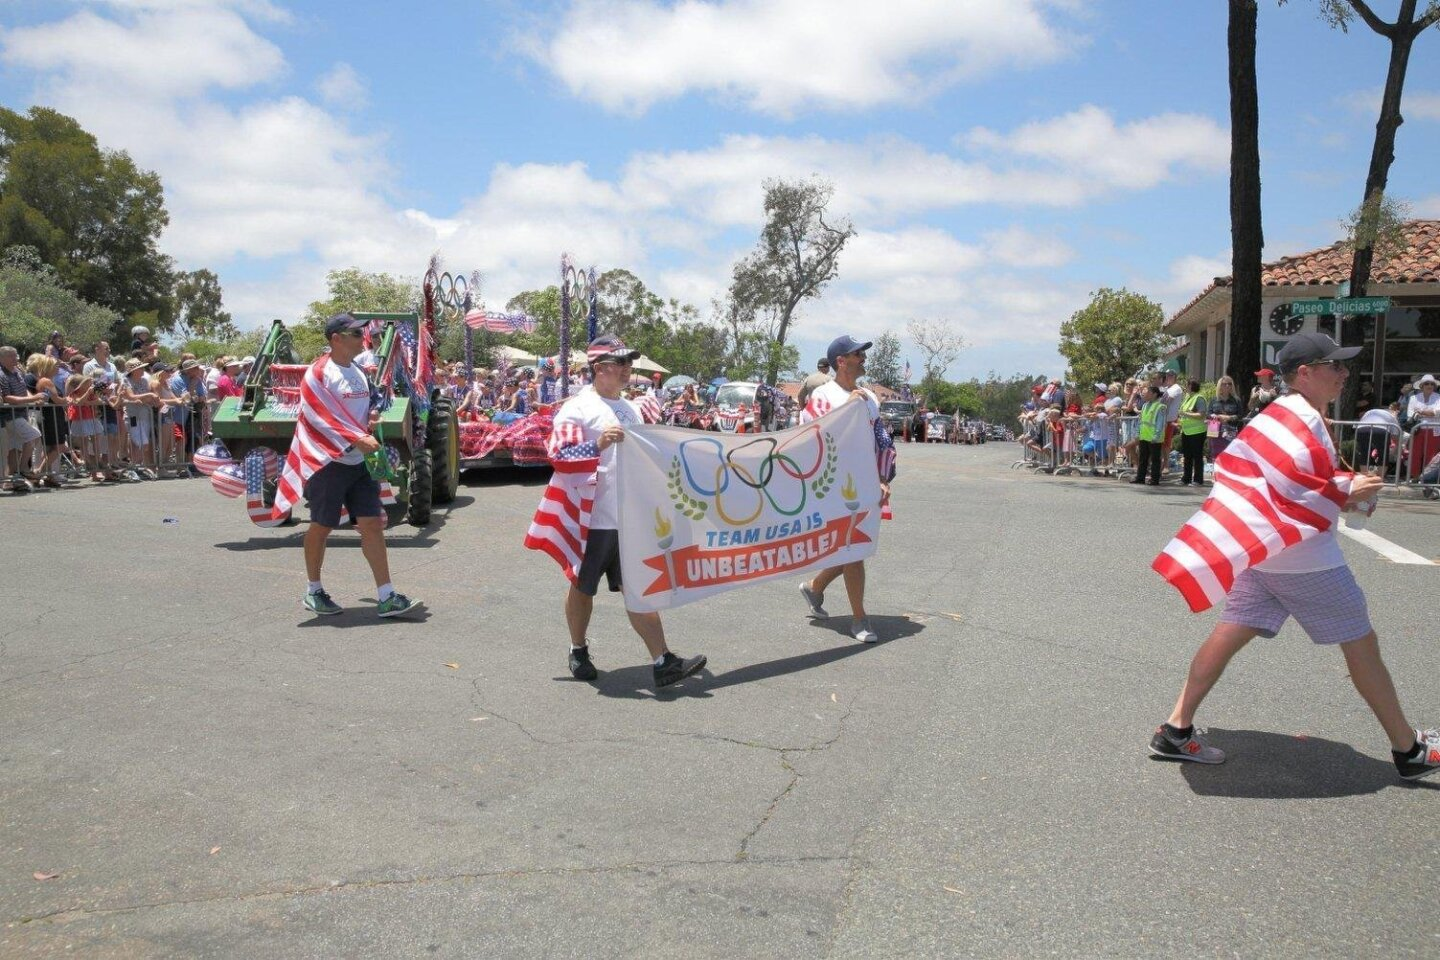 Olympic-themed floats were a part of the RSF July 4th parade